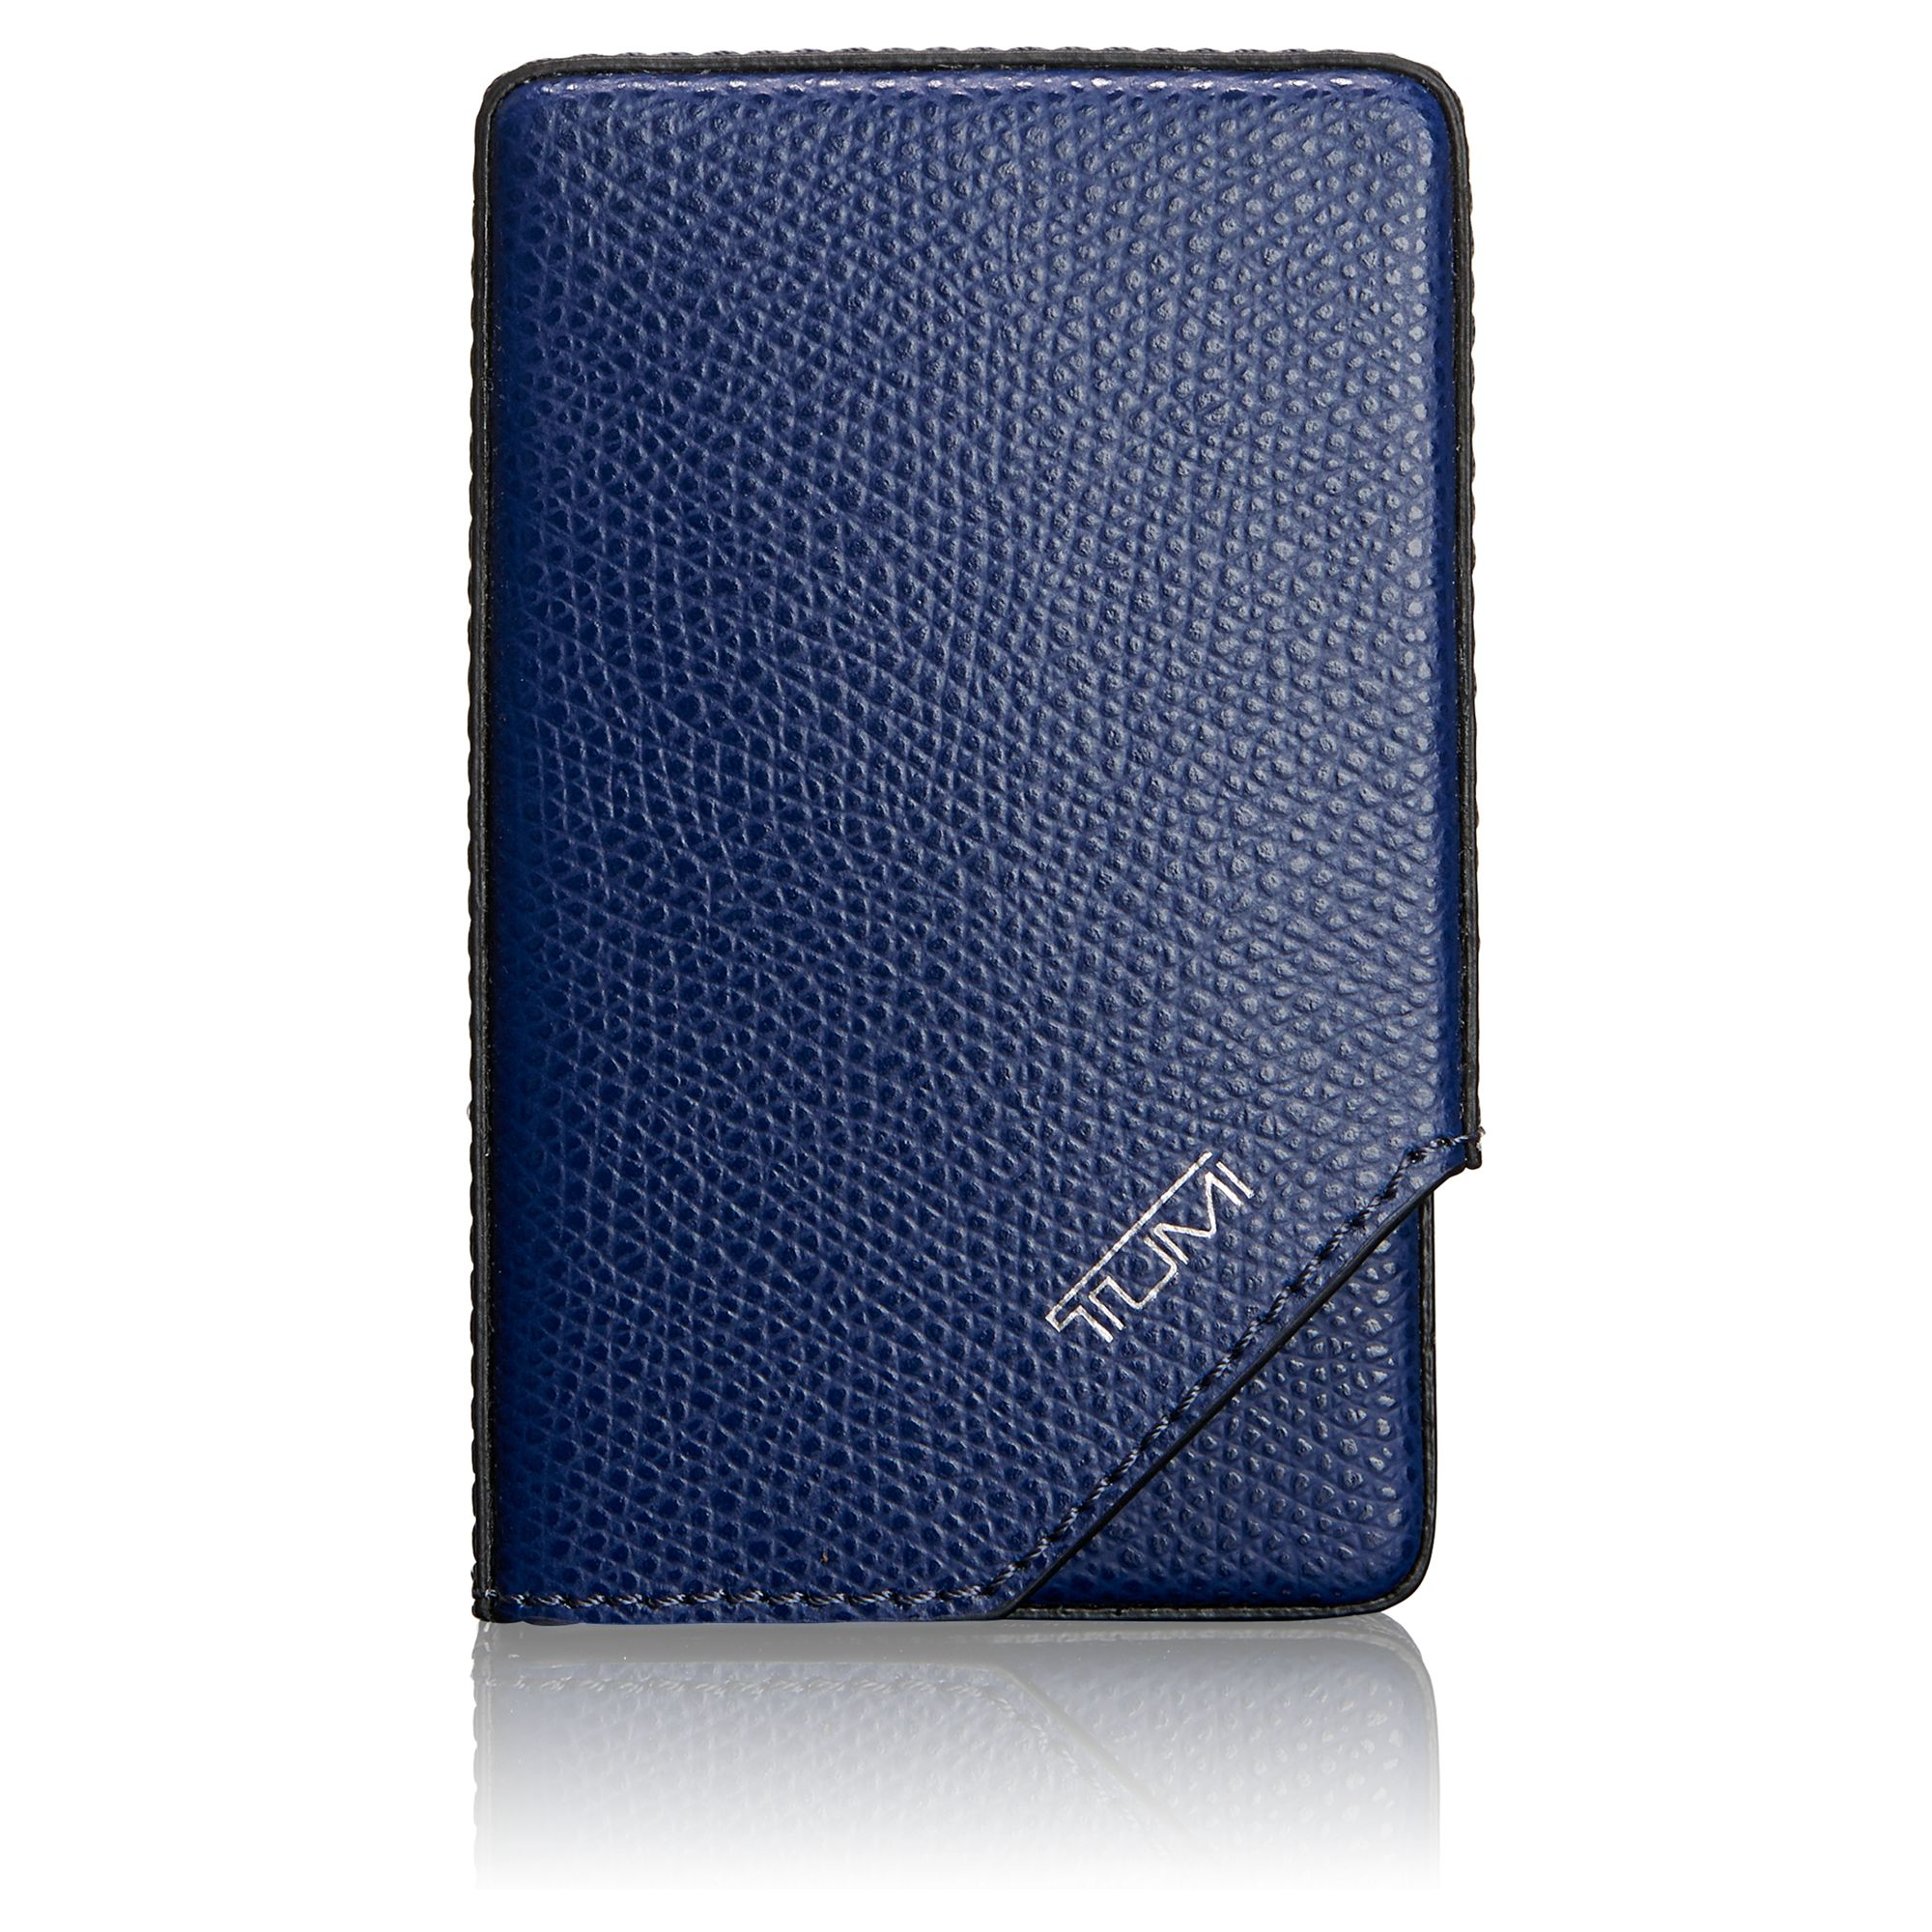 Business card case camden tumi united states business card case in indigo magicingreecefo Gallery